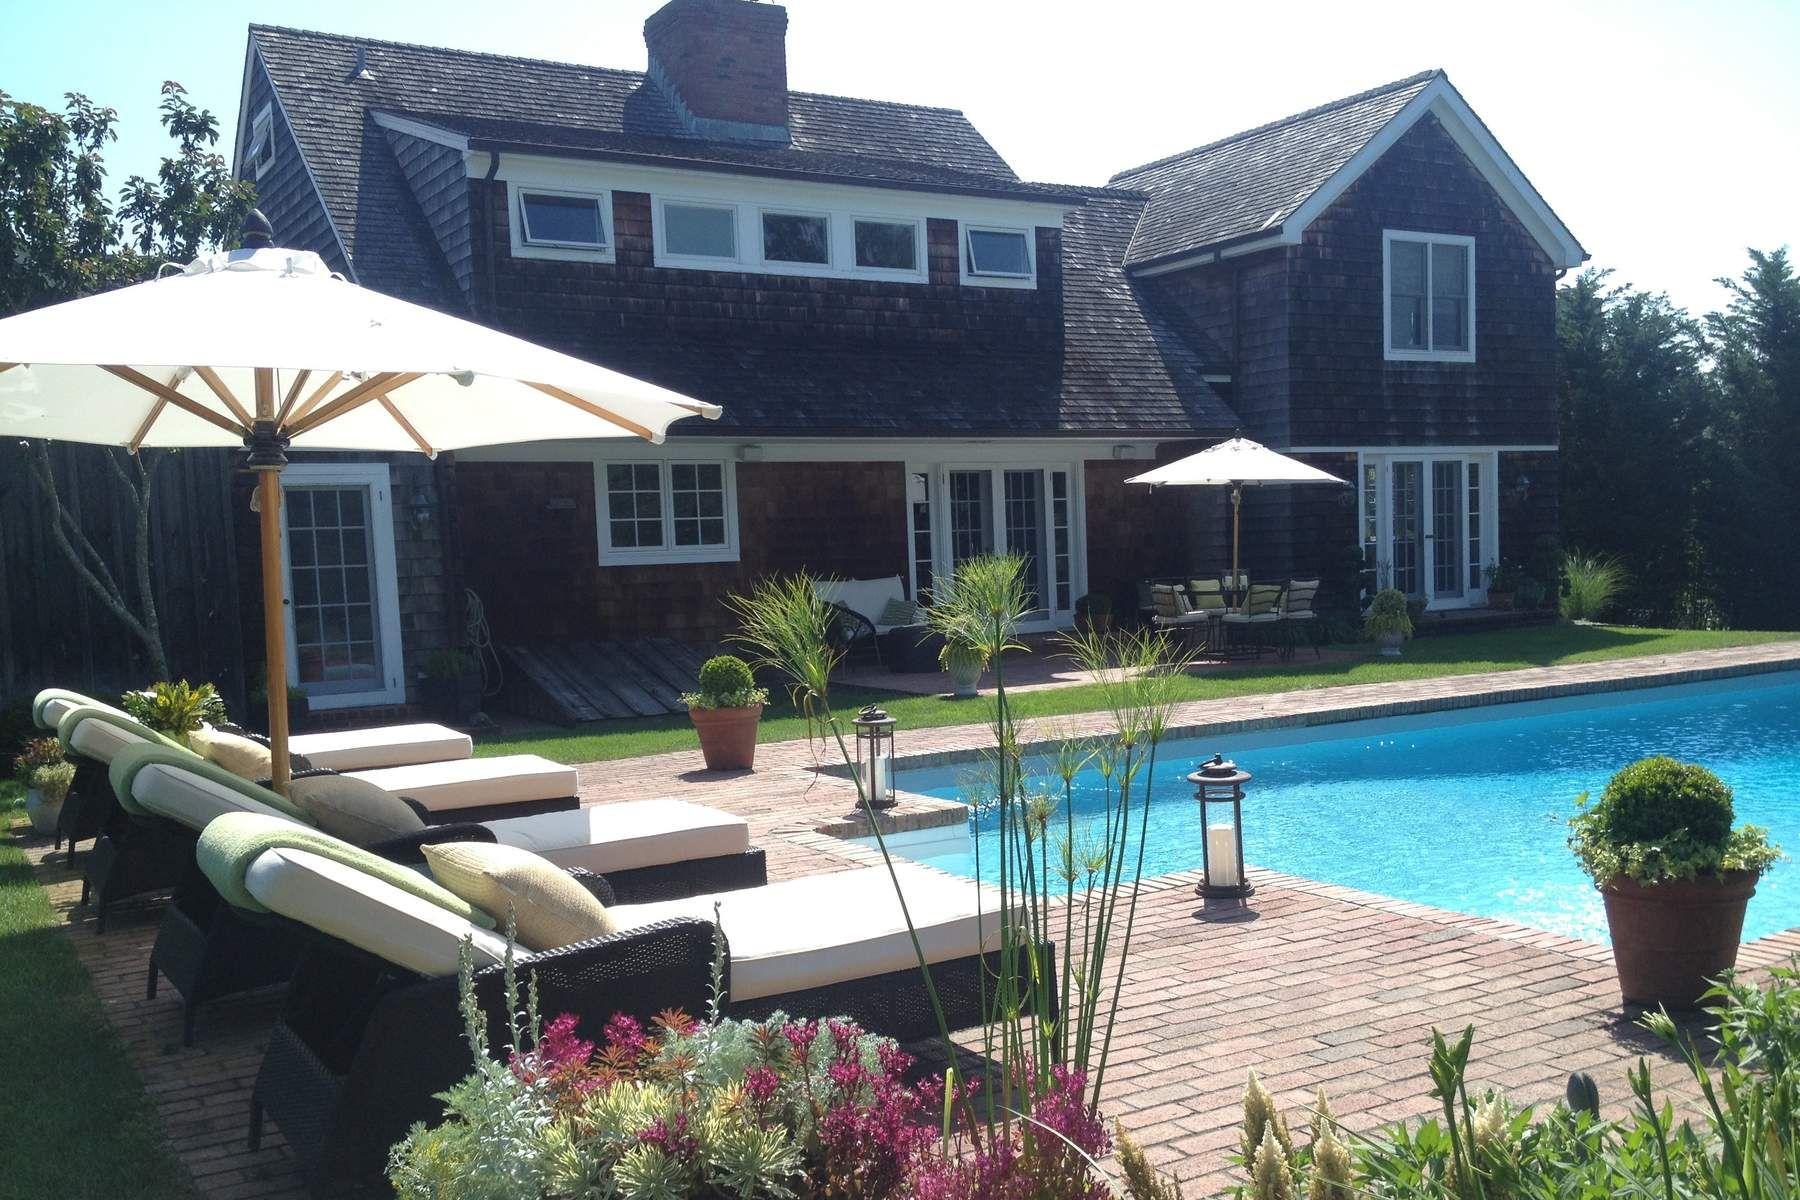 Single Family Home for Rent at Bridgehampton Convenience Bridgehampton, New York 11932 United States